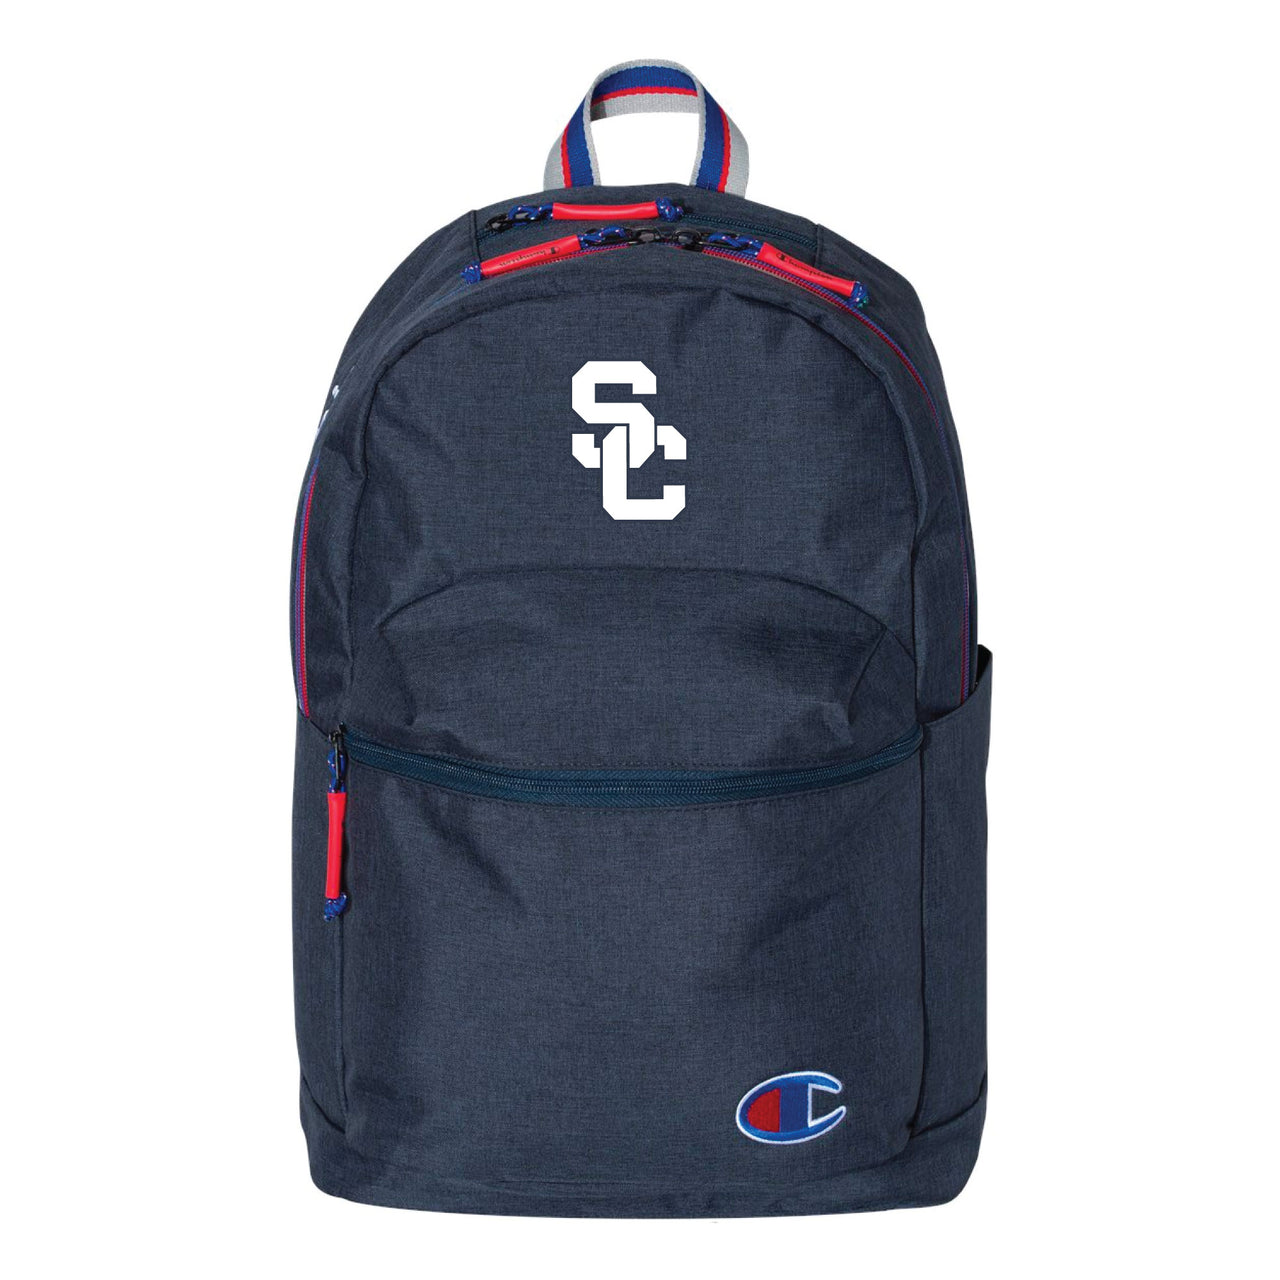 Champion 21L Backpack